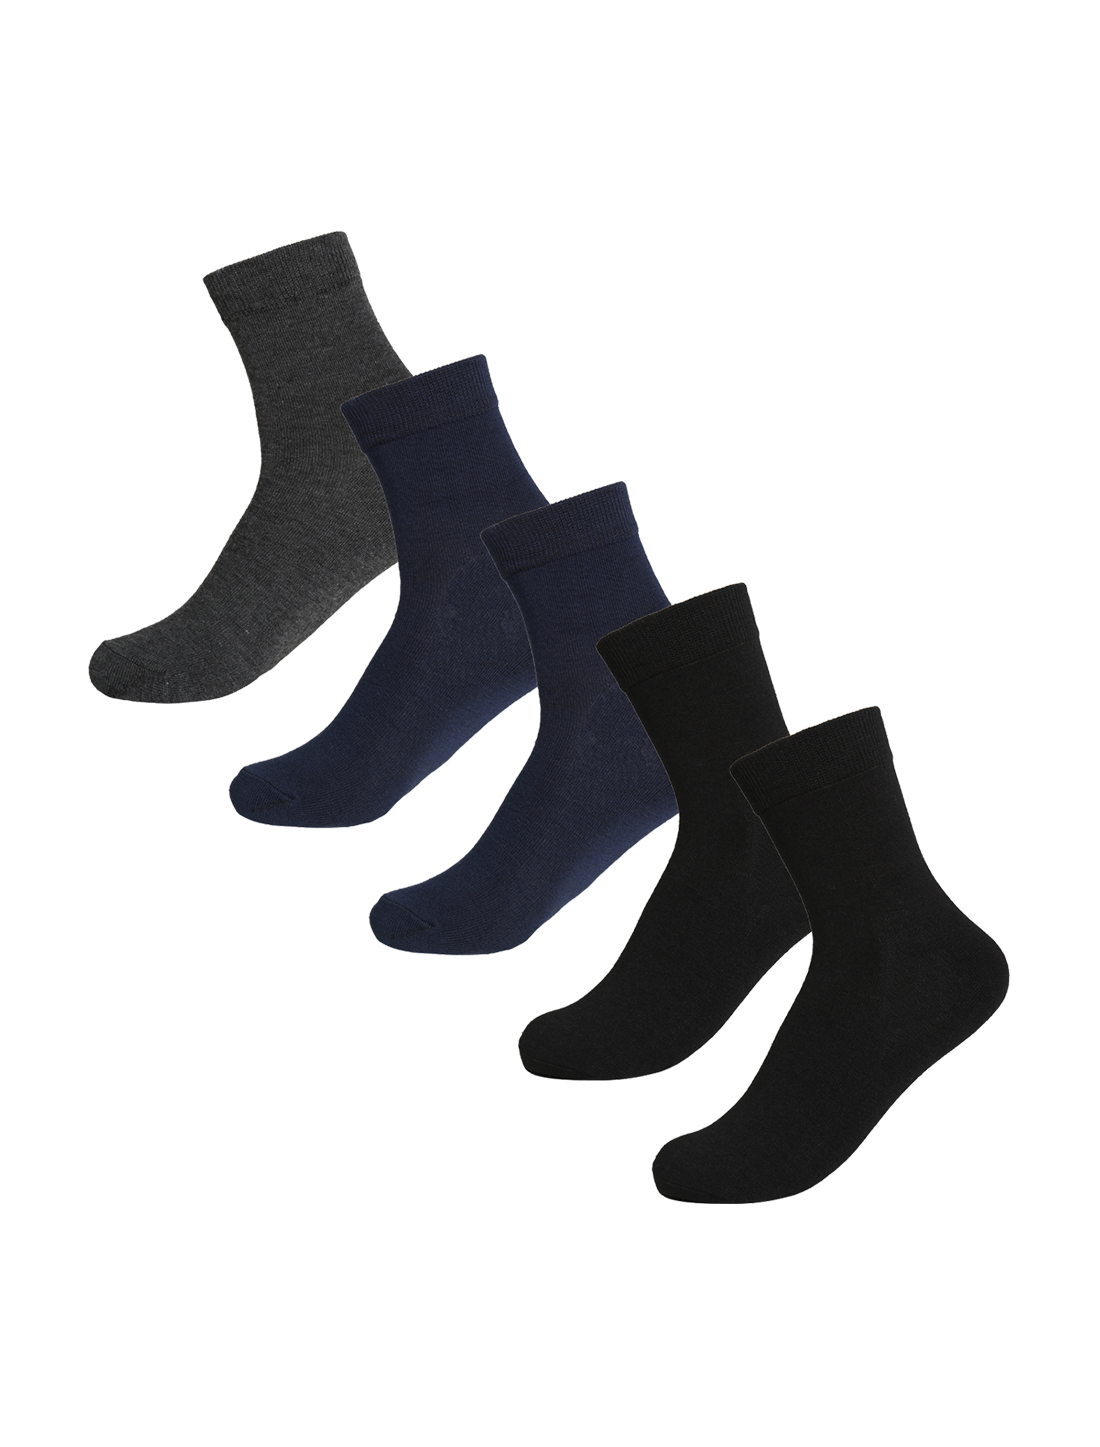 Men Stretchy Winter Thermal Crew Socks 10-12 5 Pack Assorted